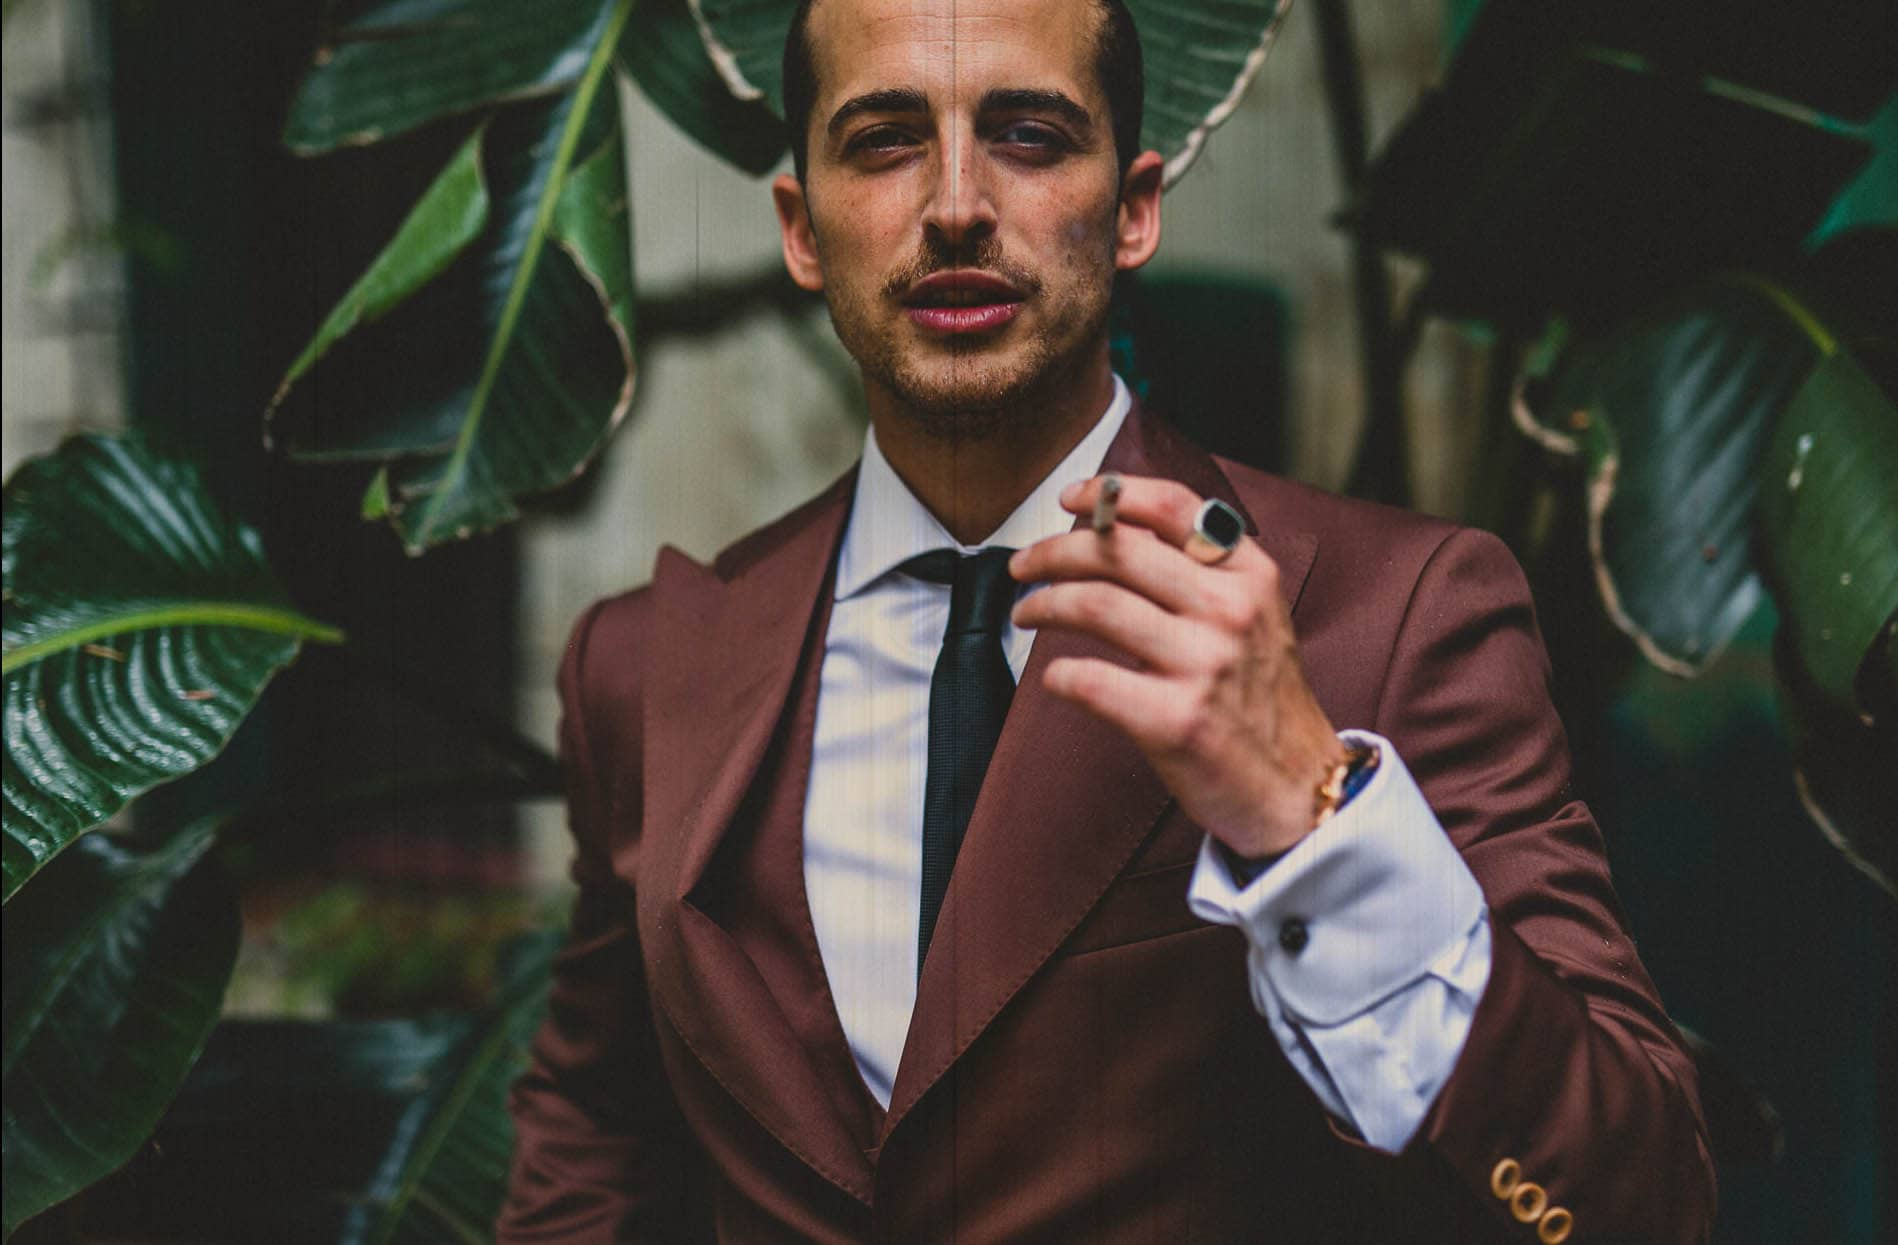 portrait of a groom in the middle of plants smoking